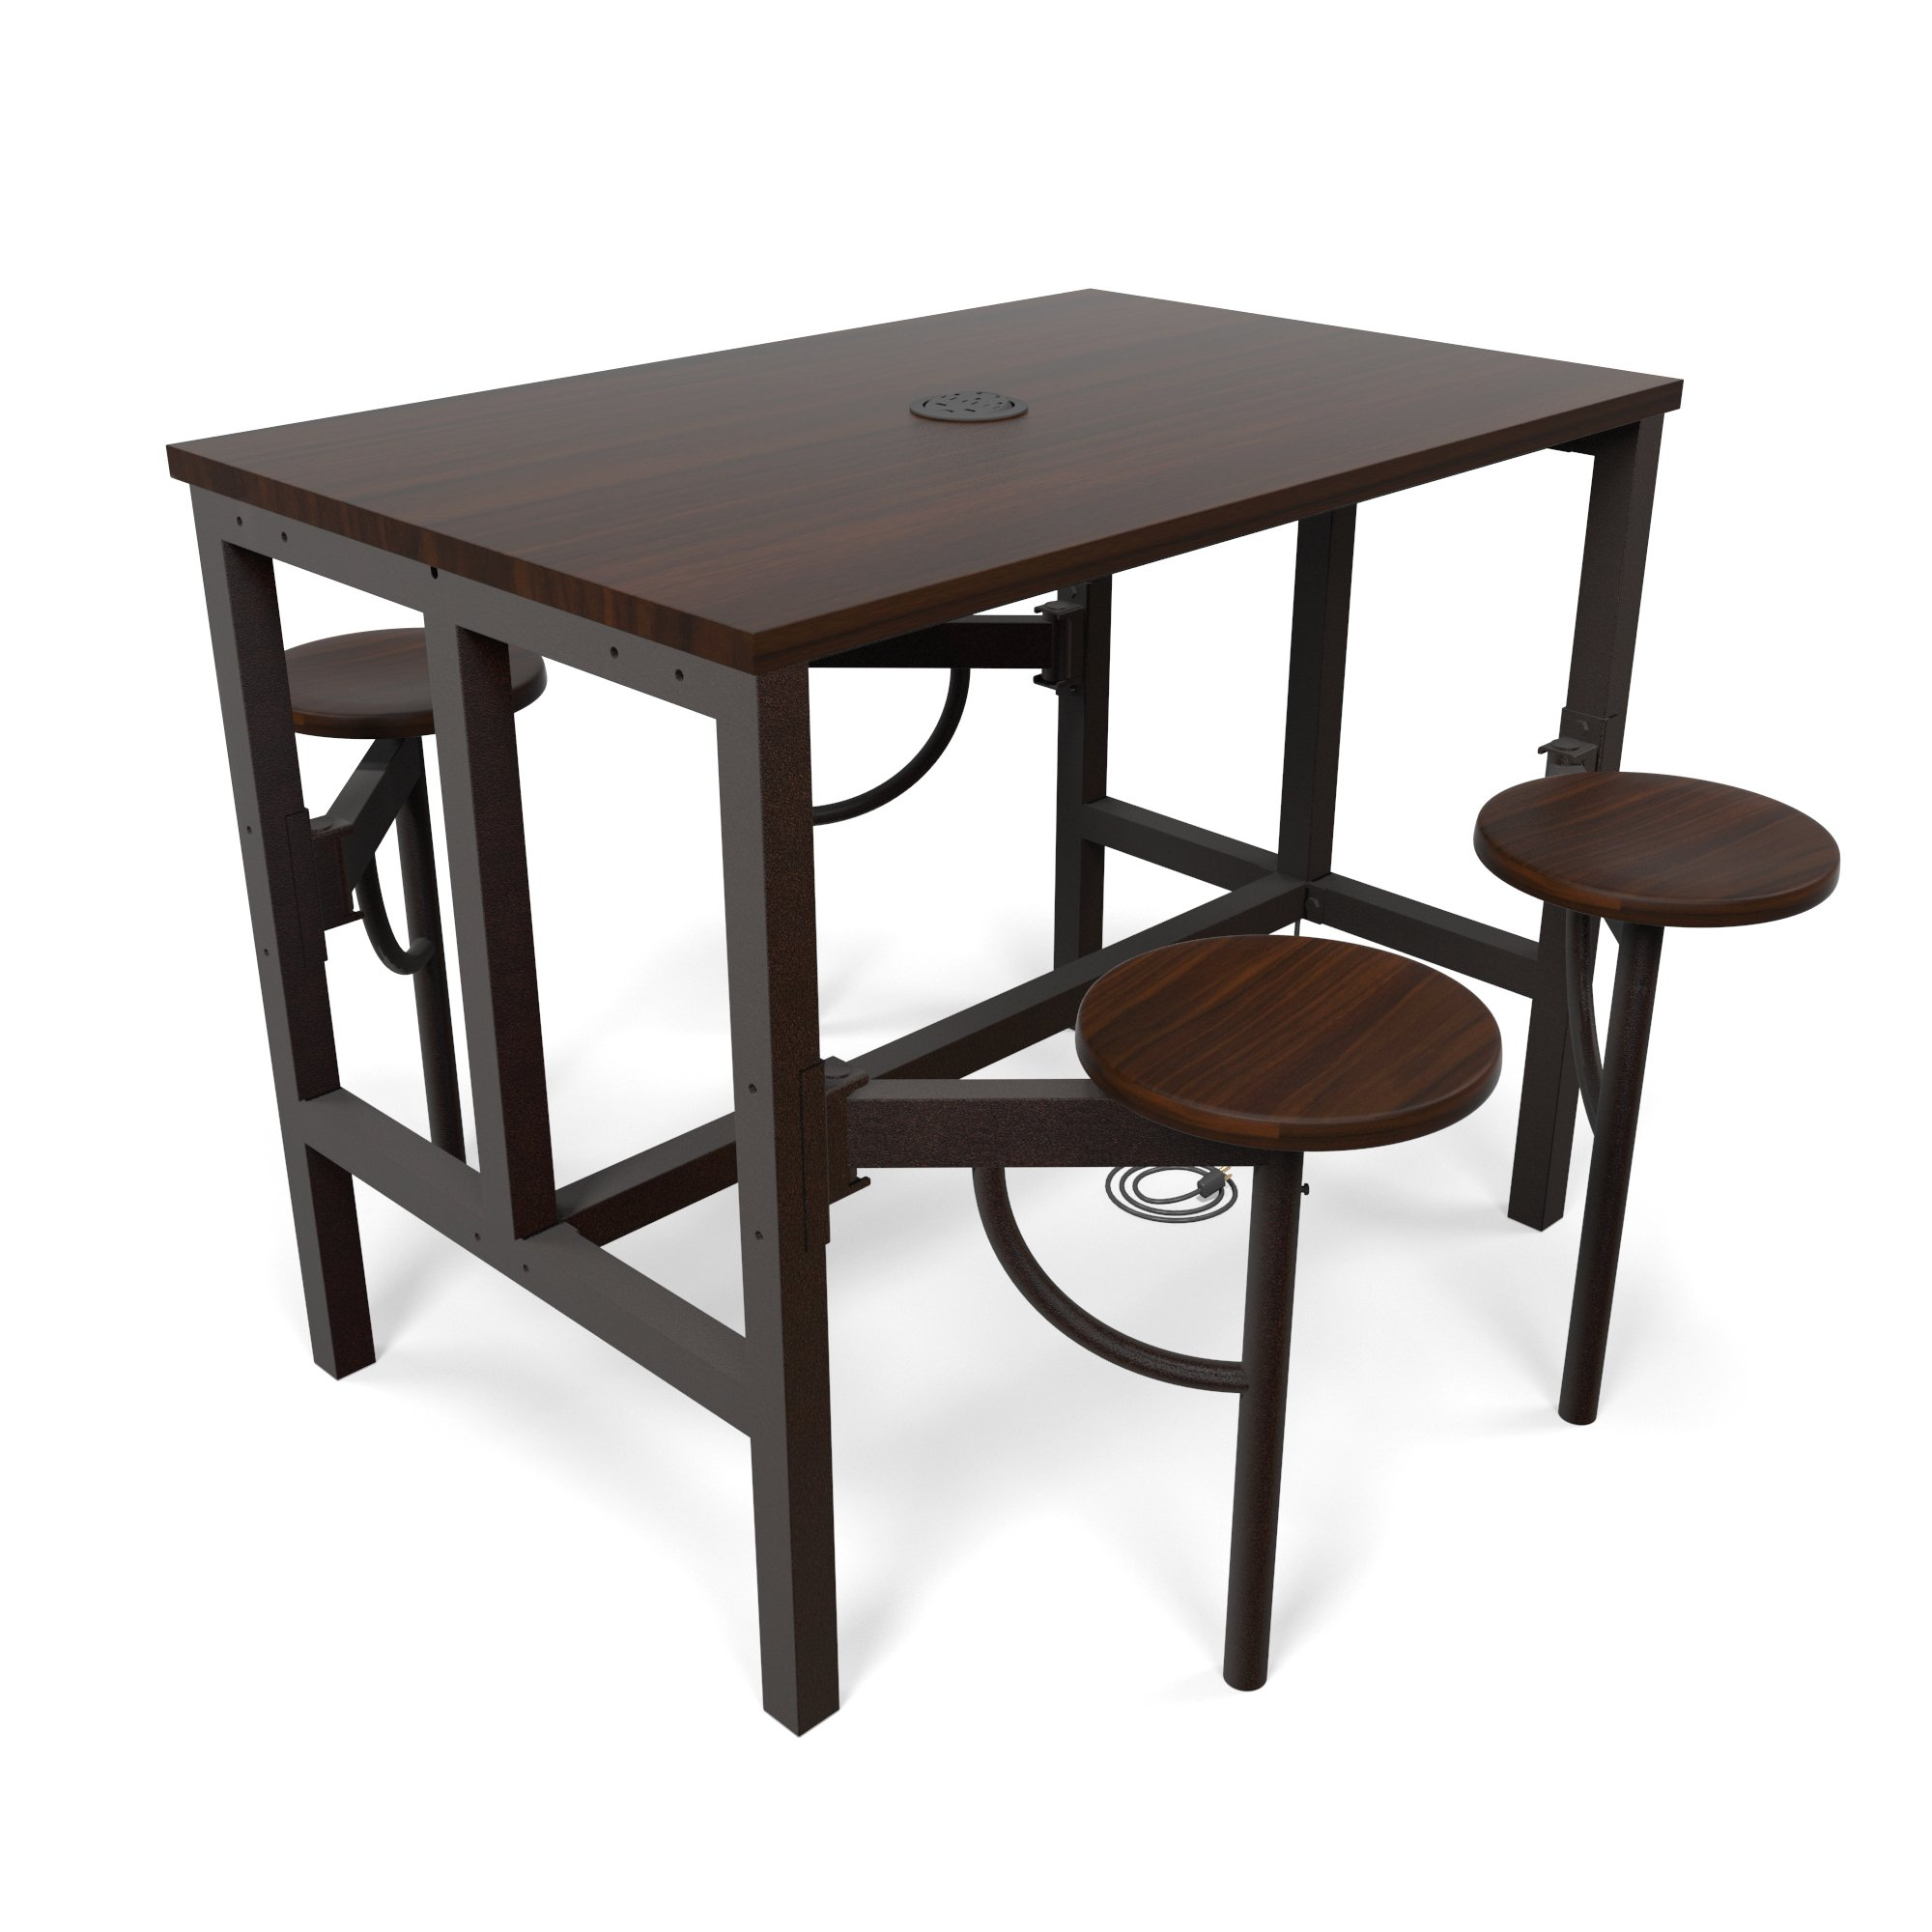 OFM 9004-WLT-WLT Model 9004 Endure Series Standing Height 4 Seat Table, 38'' Height, 31.25'' Width, 47.625'' Length, Walnut by OFM (Image #1)